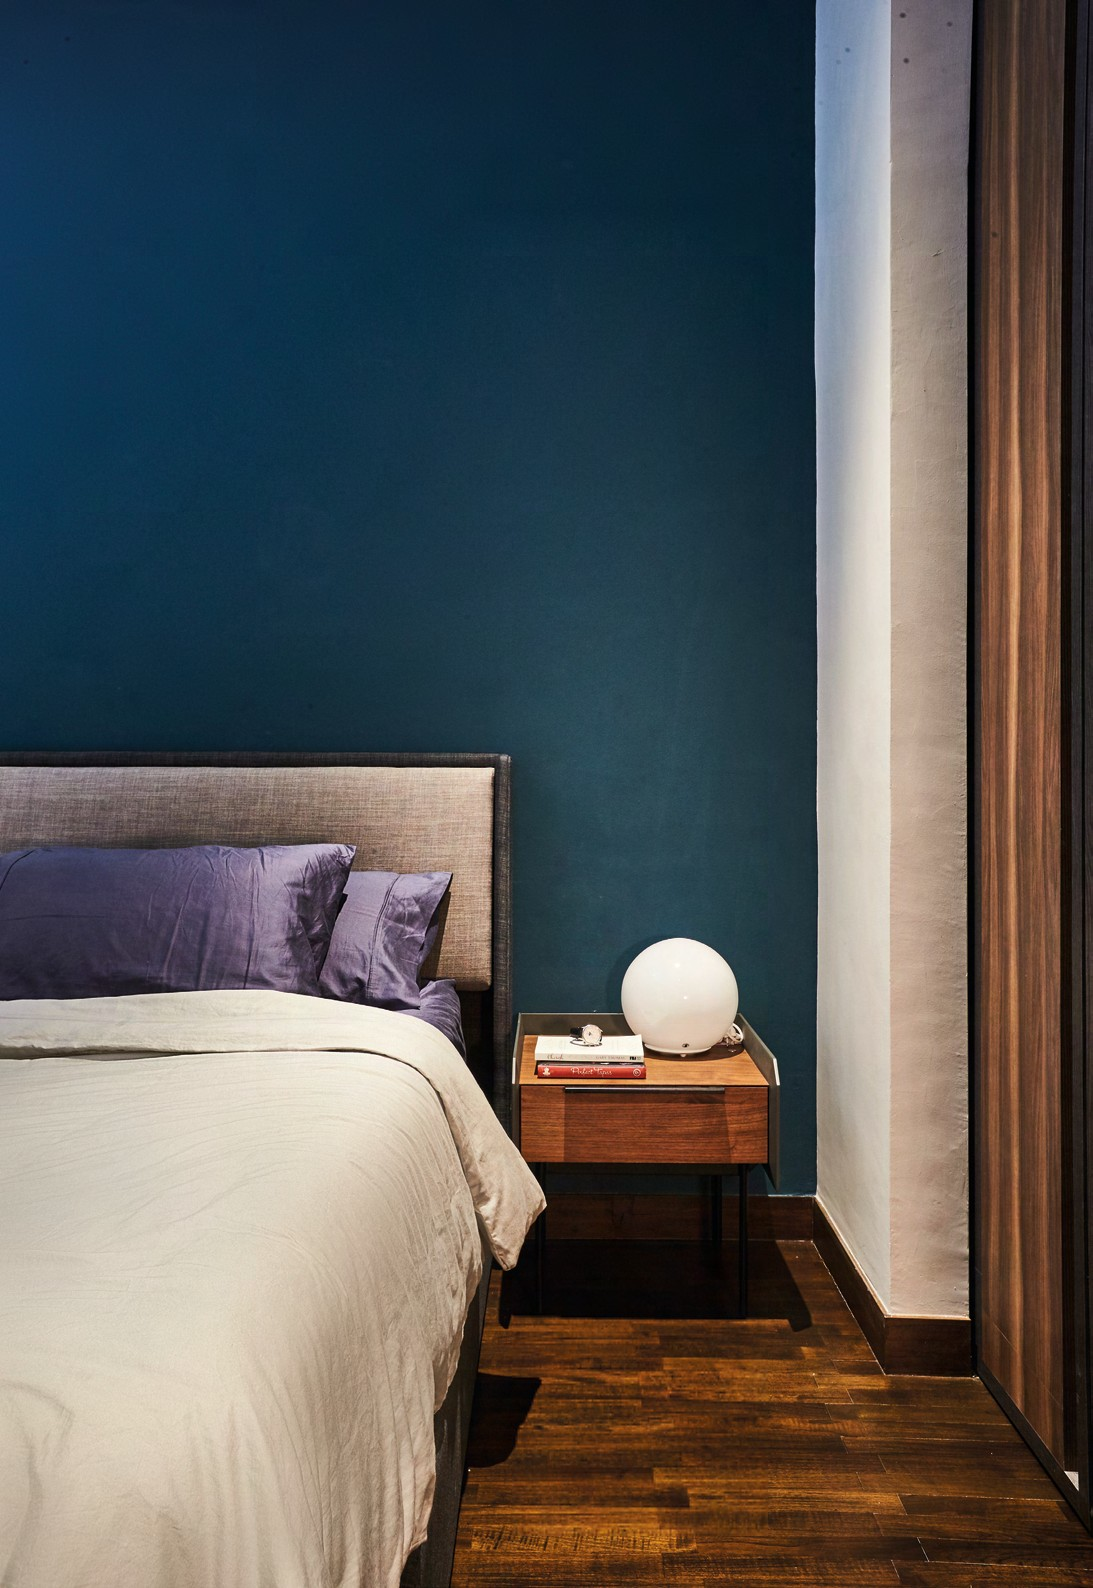 Separating the sleeping area and walk-in wardrobe are specially detailed sliding doors with a gap in between that lets in light. The peekaboo effect accentuates the layering of spaces – from the bedroom to the walk-in wardrobe and the master bath beyond.